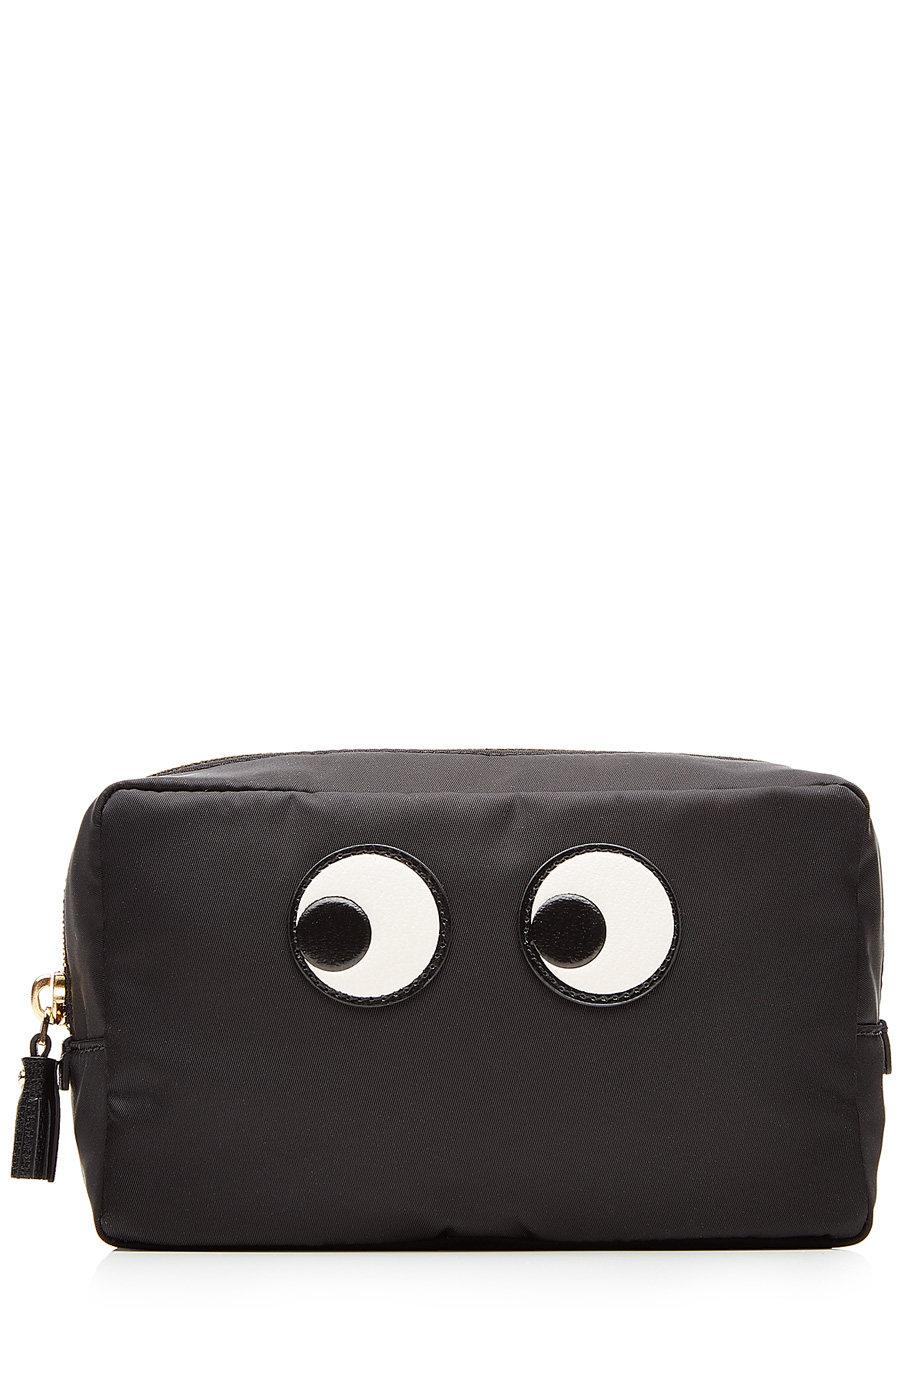 Eyes Fabric Make-Up Pouch